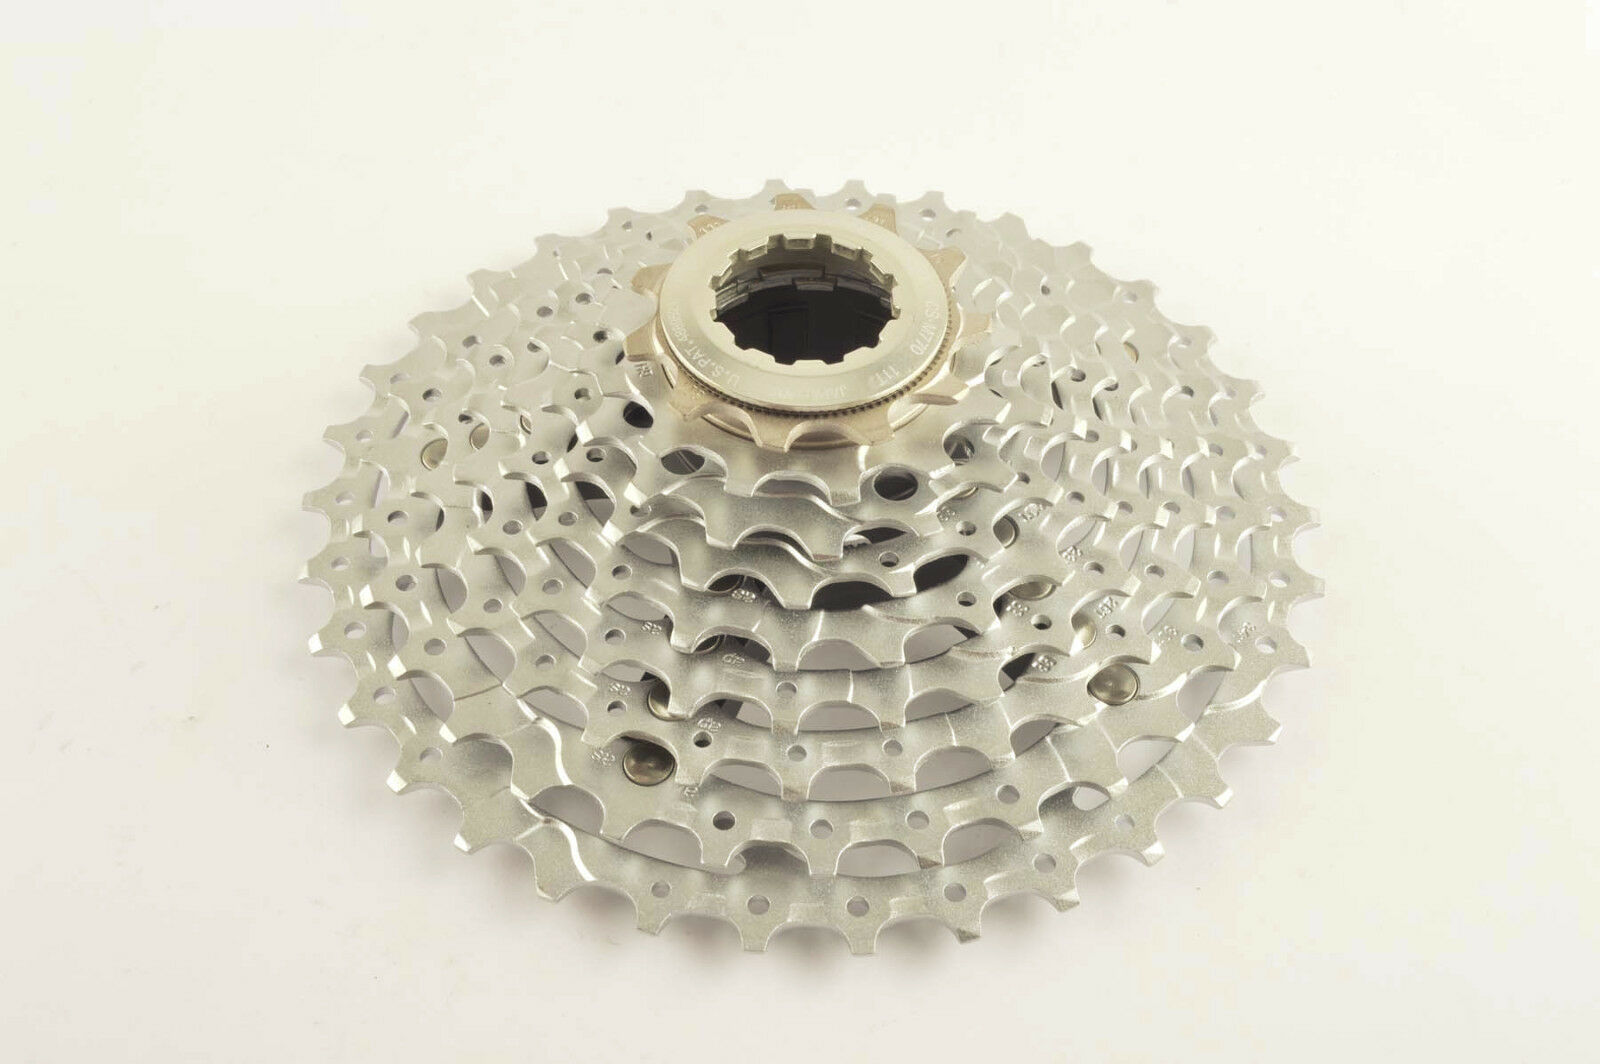 NEW Shimano Deore XT  CS-M770 9-speed cassette 11-34 teeth from 2008 NOS